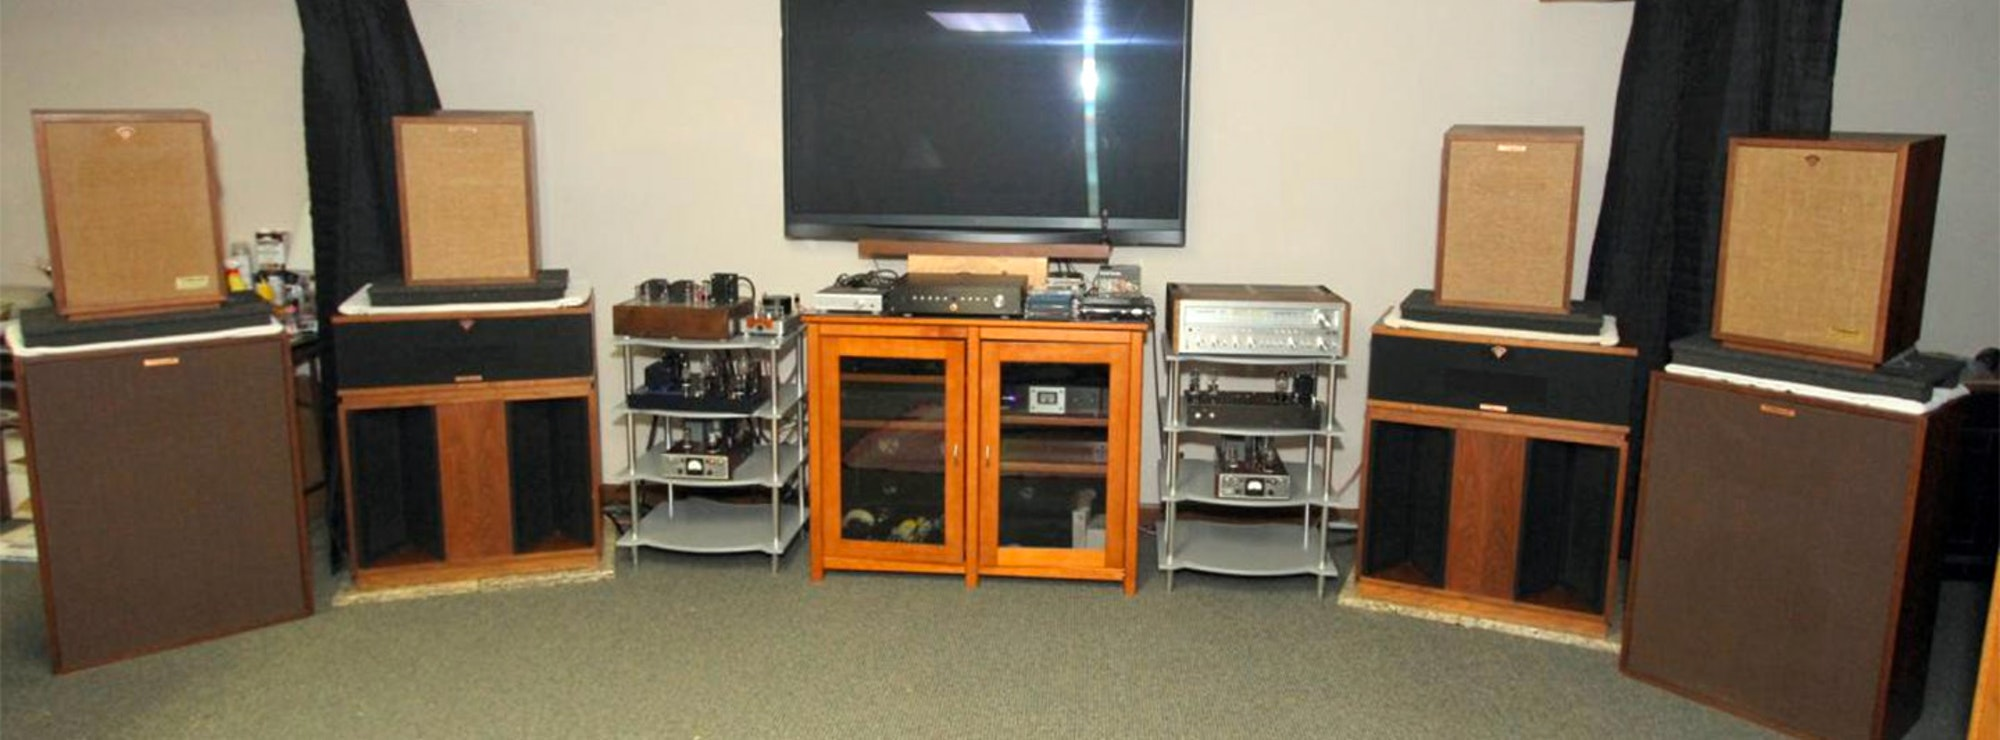 A variety of Klipsch speakers surrounding a tv